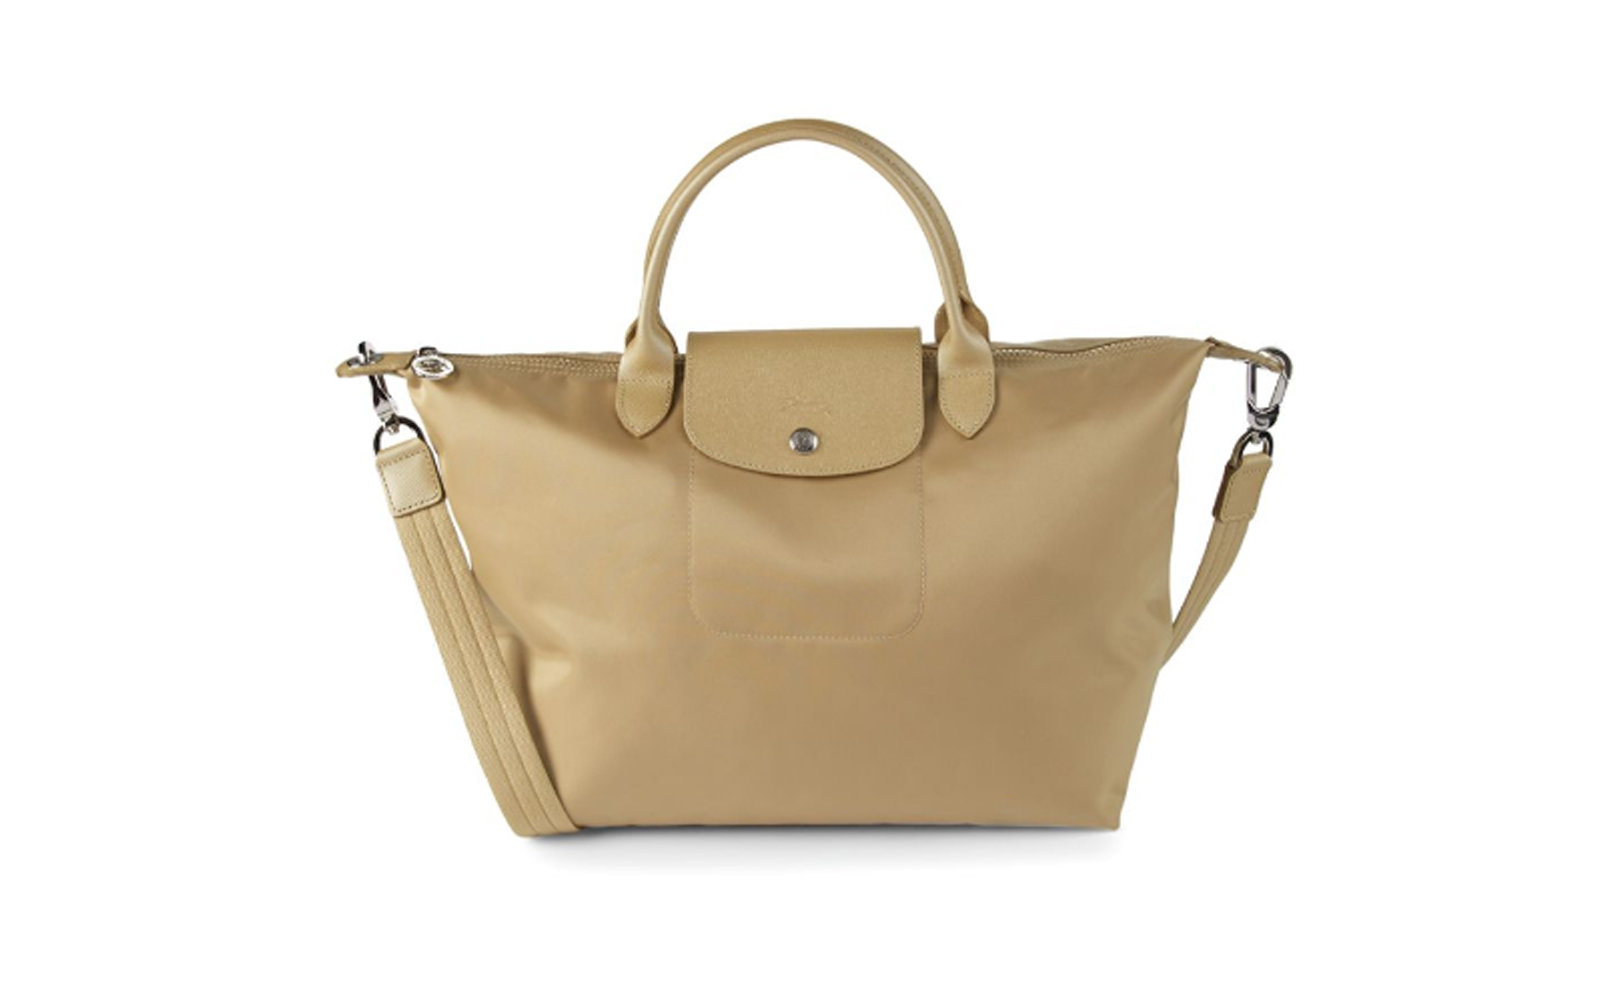 Longchamp Medium Le Pliage Tote in Gold